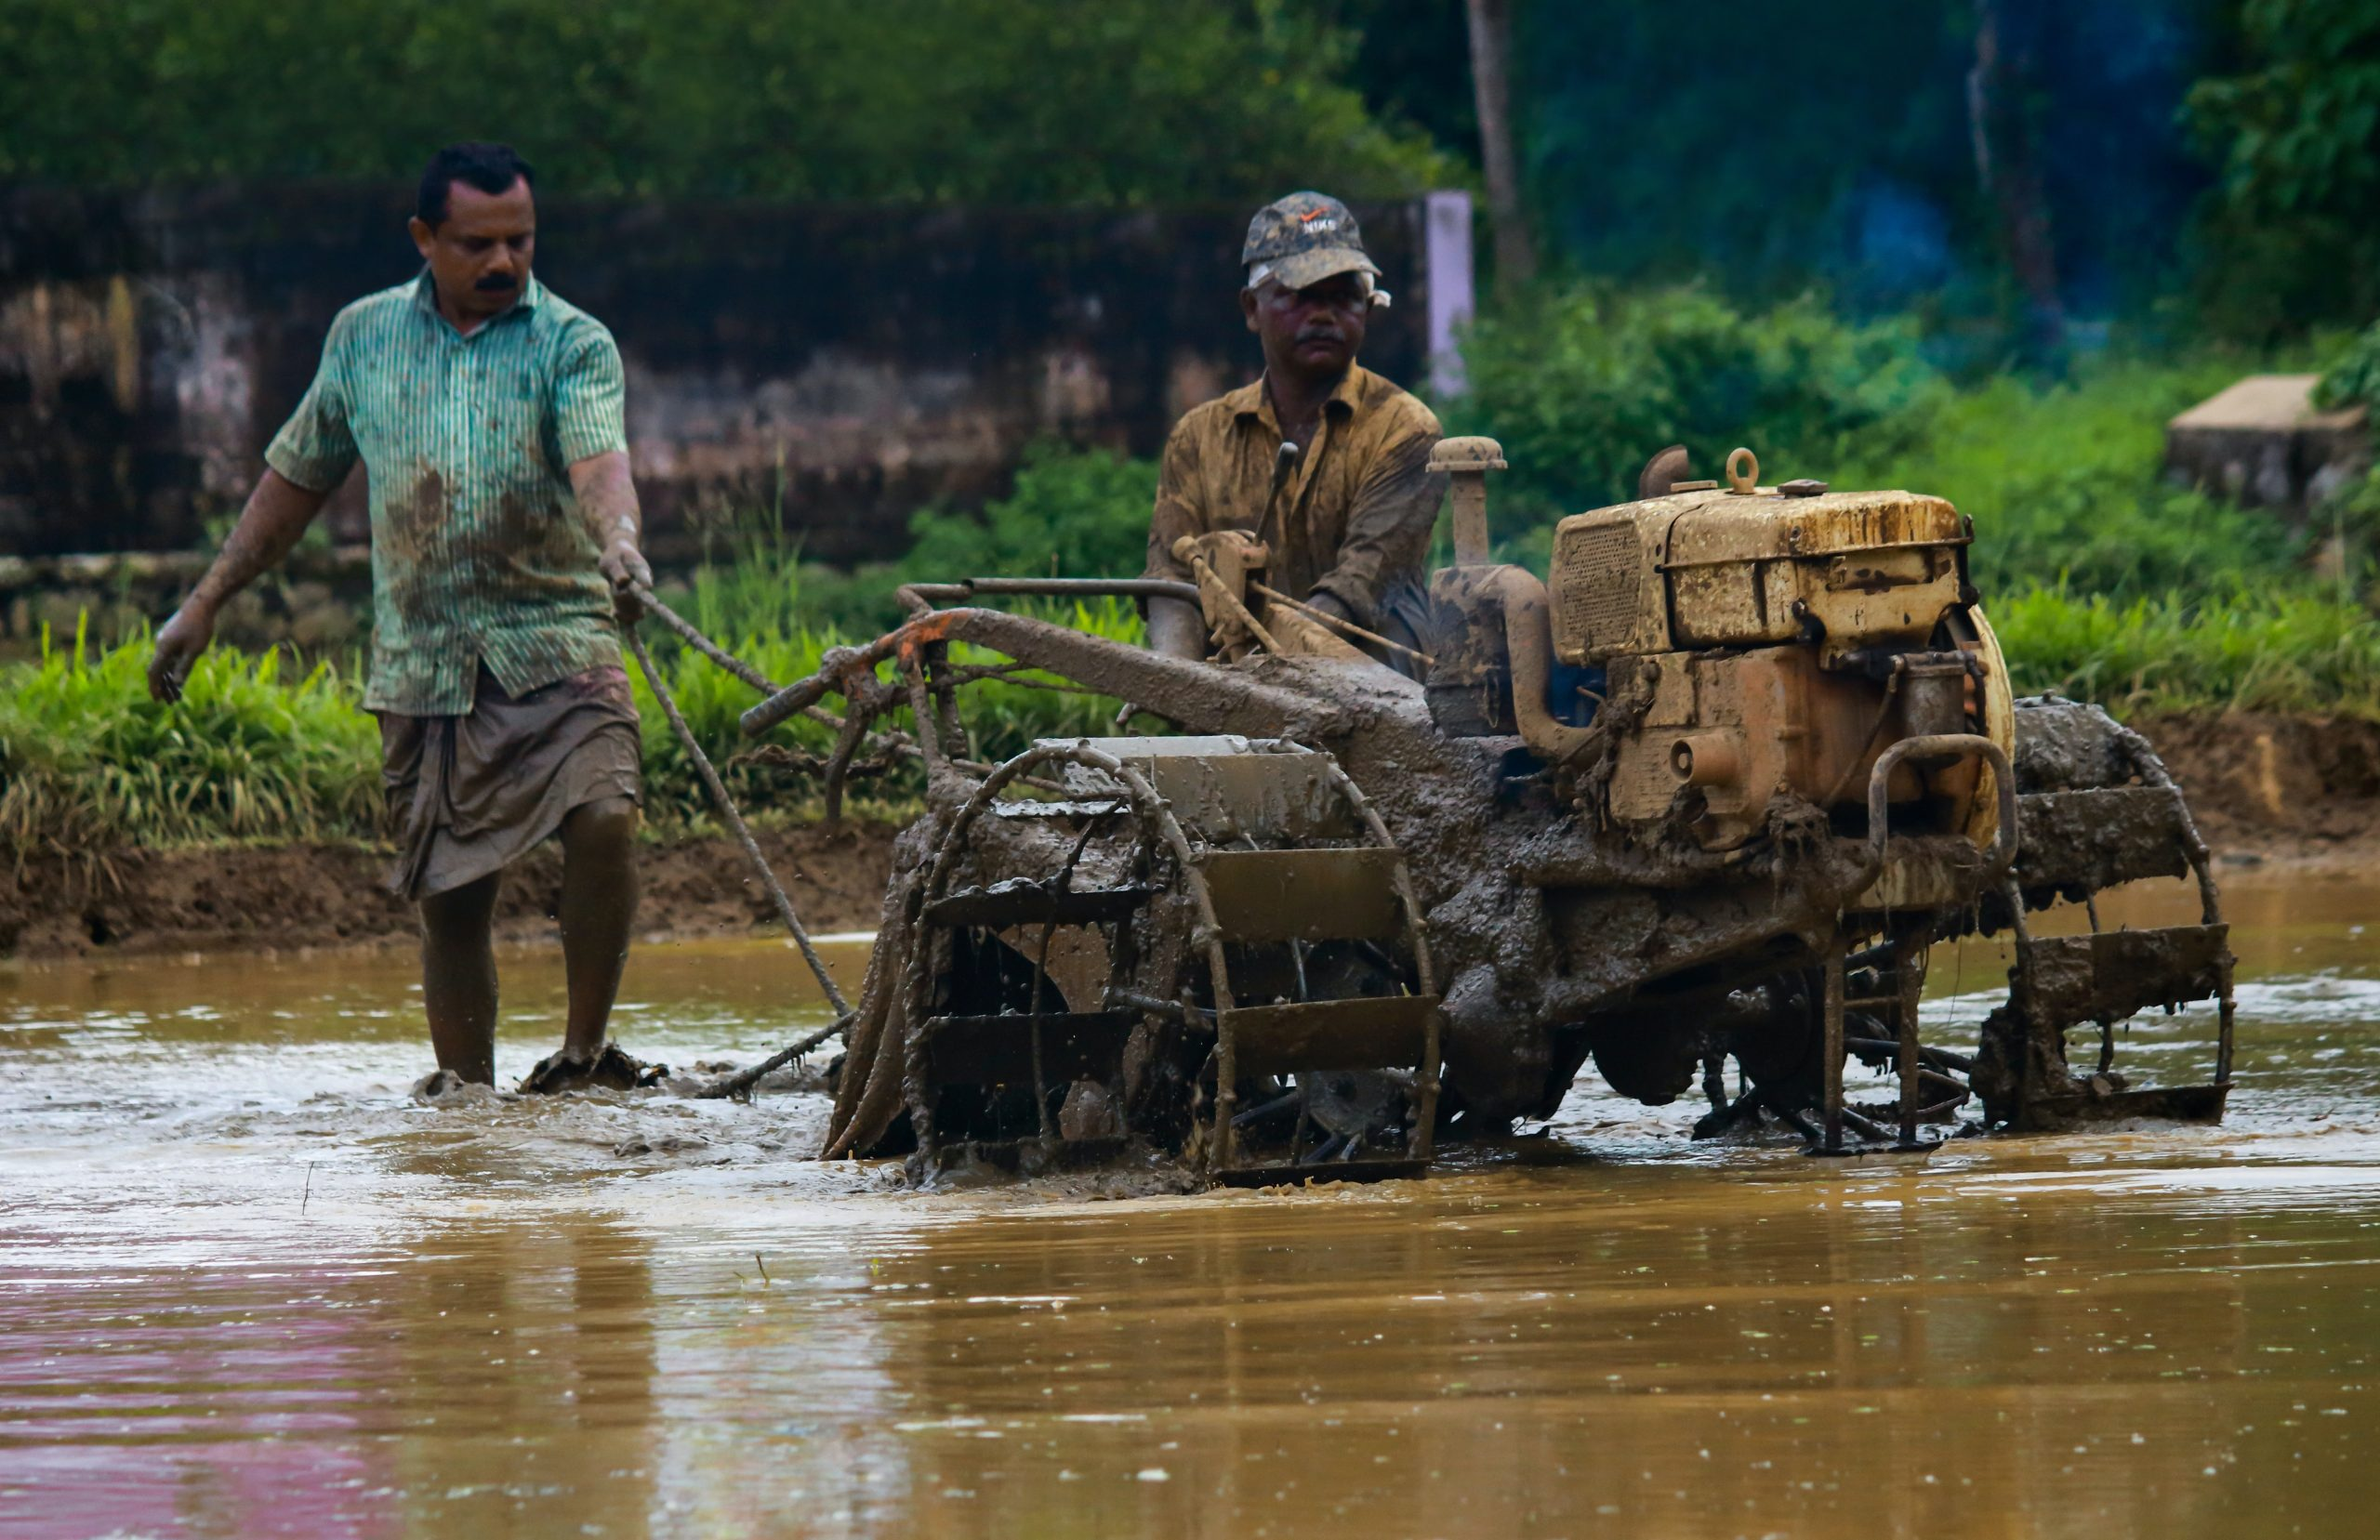 A man drives a tractor through a rice paddy